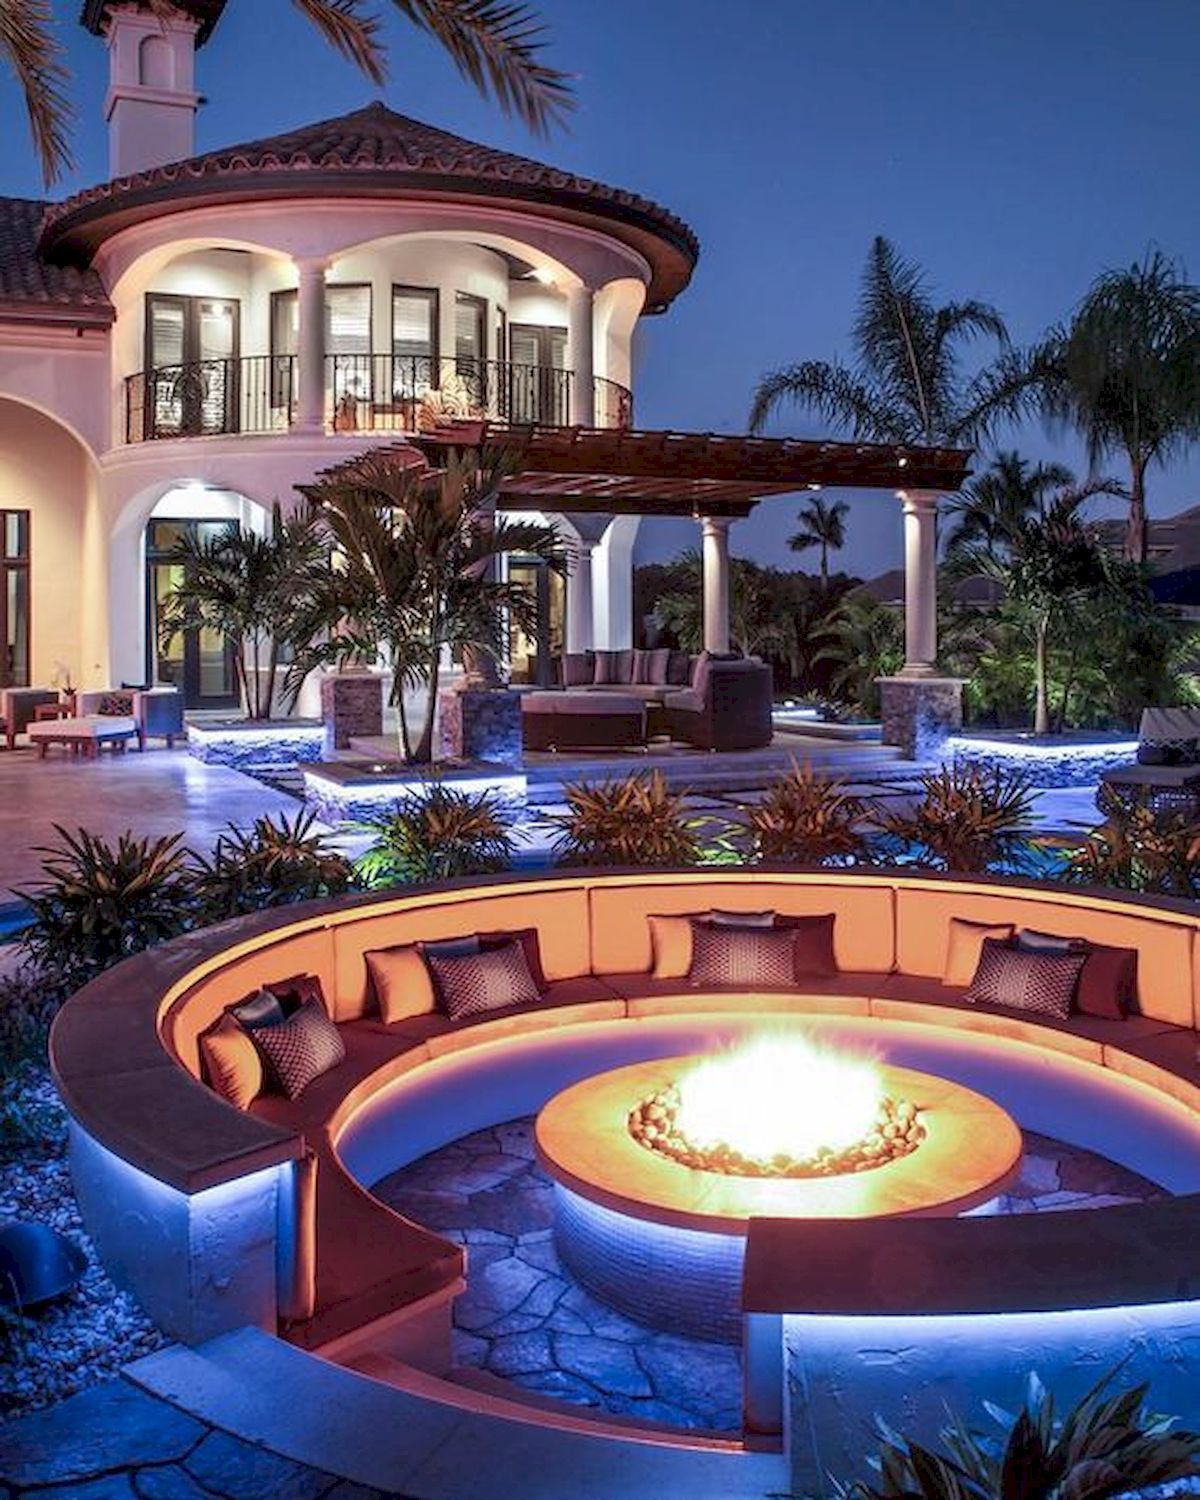 Nice 40 Stunning Mansions Luxury Exterior Design Ideas Https Livingmarch Com 40 Stunning Mansions Luxury Exterior Luxury Exterior Design Dream House Interior